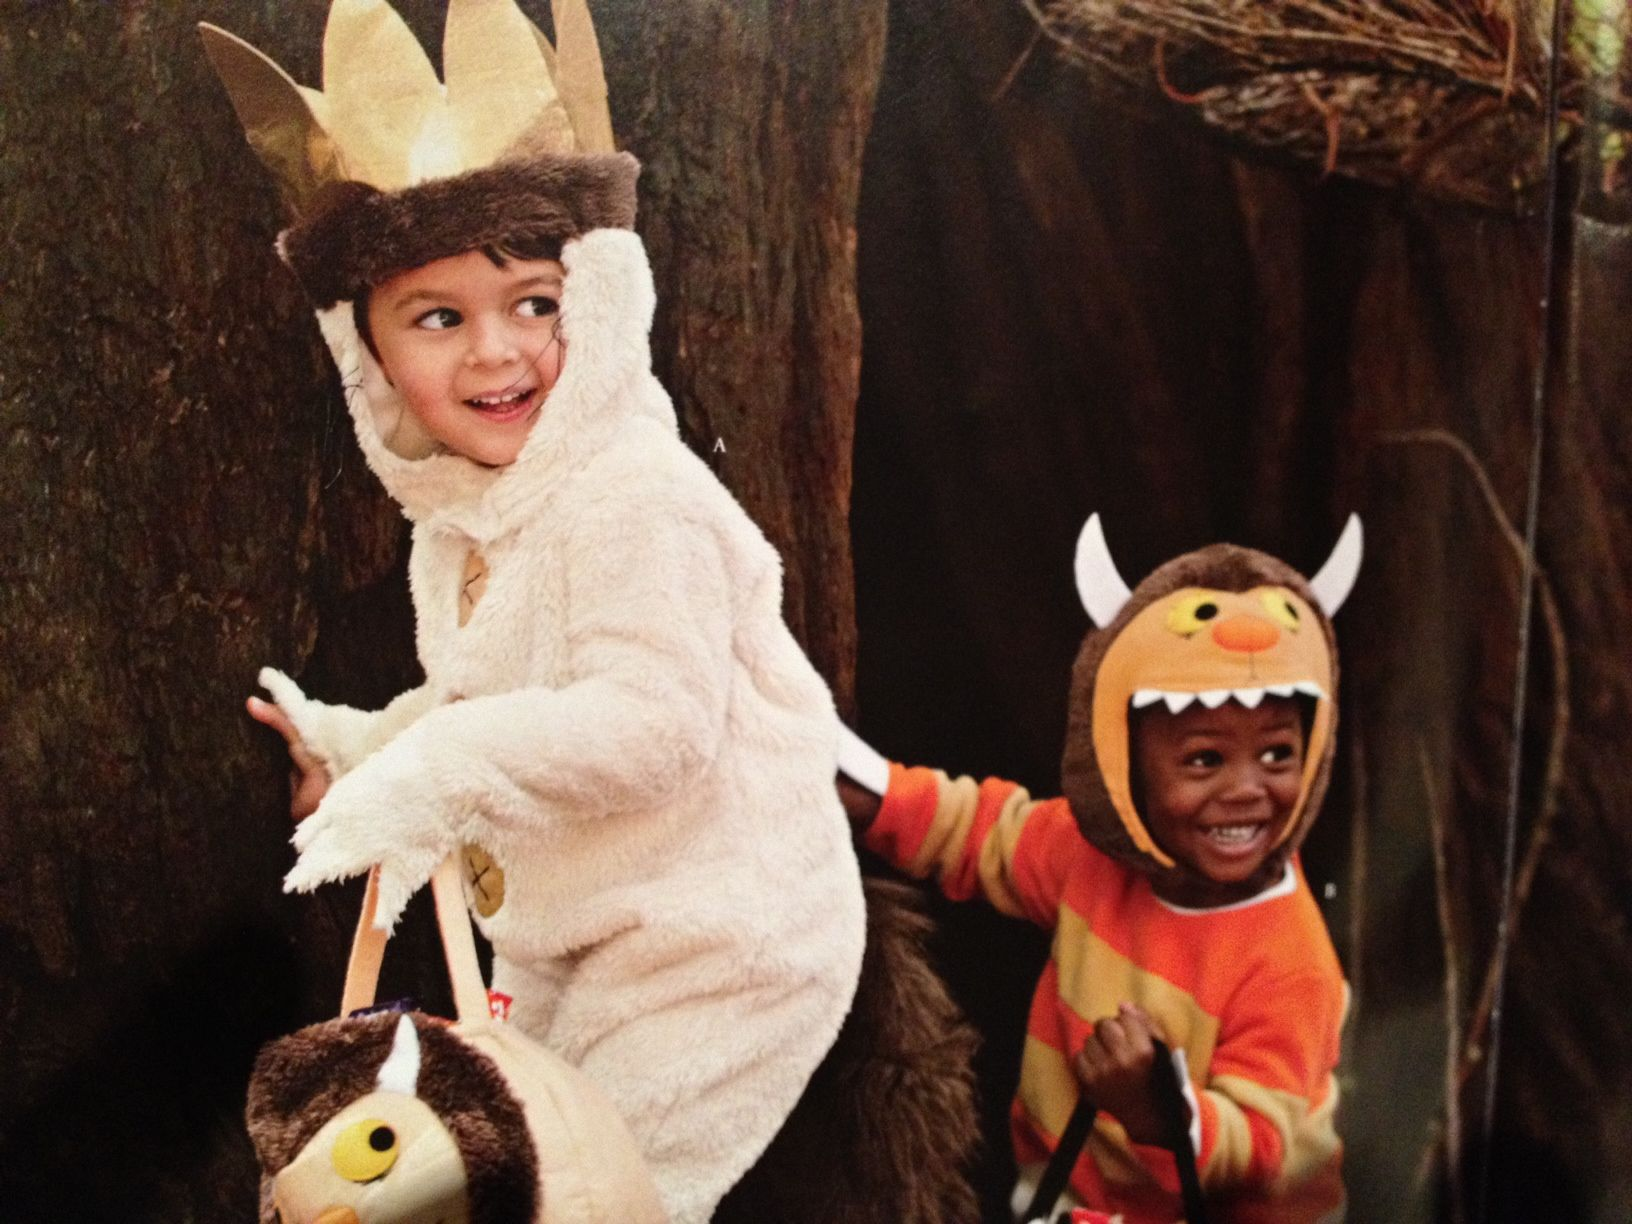 pottery barn halloween costumes max and the monster from where the wild things are - Max Halloween Costume Where The Wild Things Are